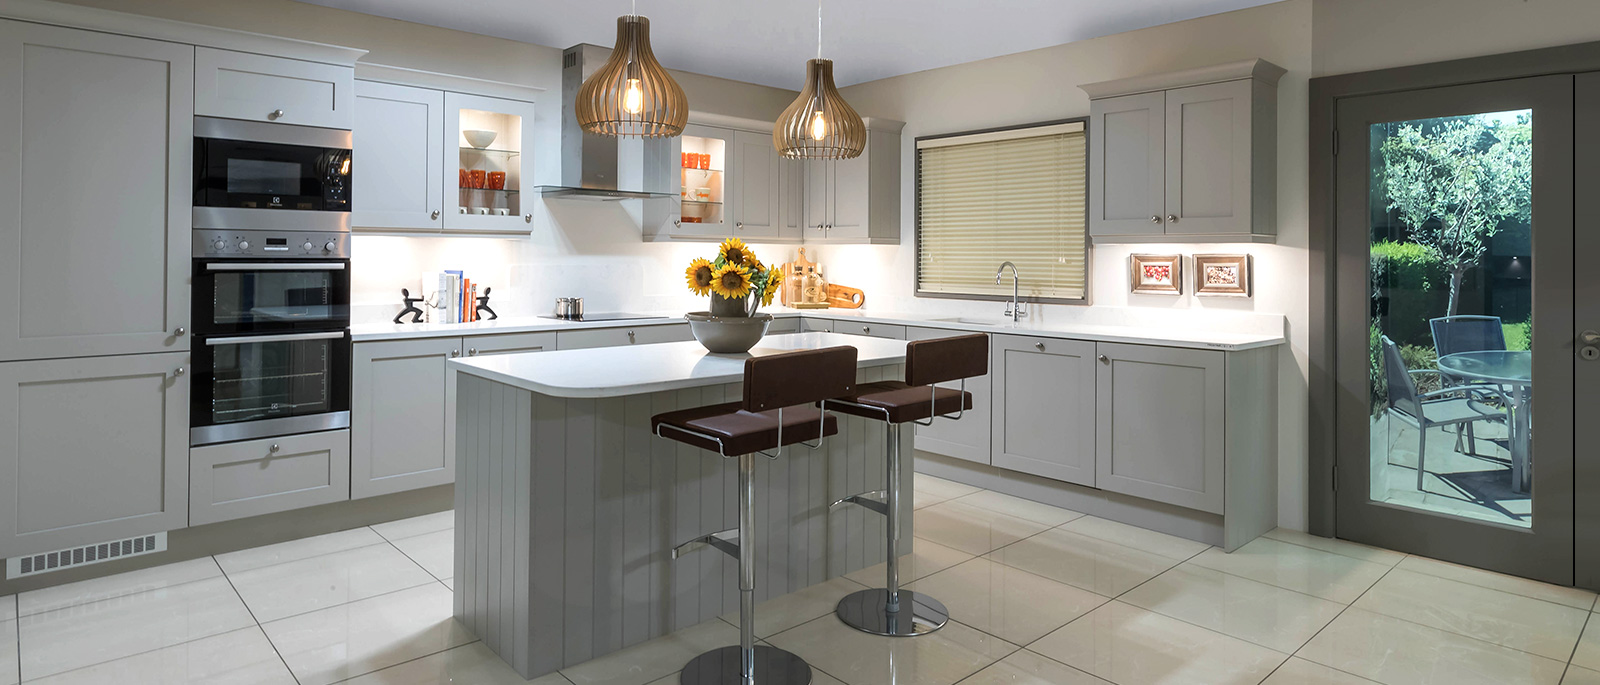 Kitchens Nolan Kitchens Contemporary Kitchens Fitted Kitchens